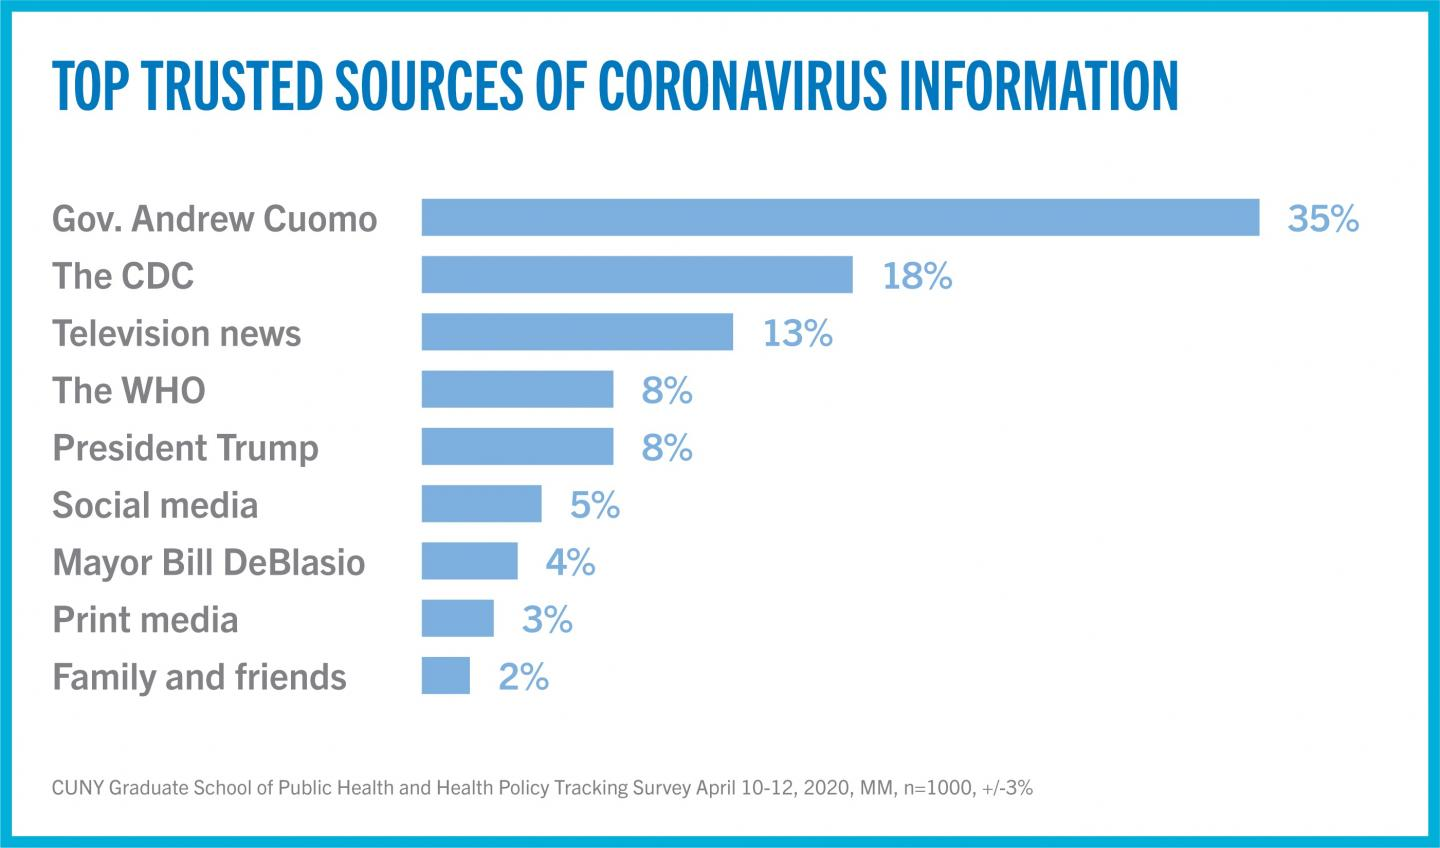 Top Trusted Sources of Coronavirus Information